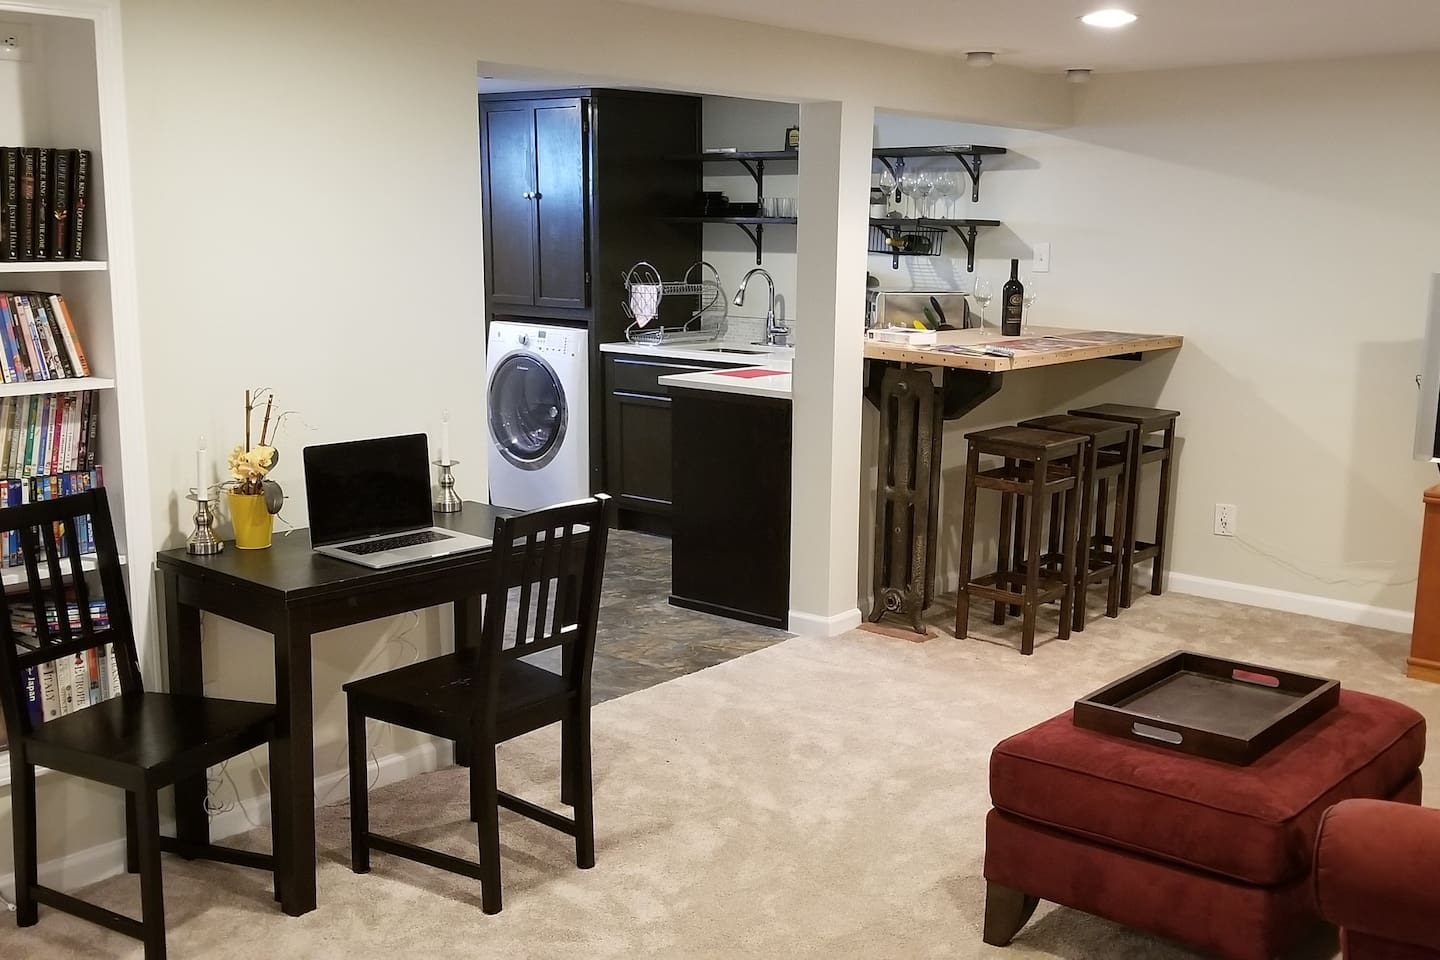 Place to relax with glass of wine, book, favorite movie or catch up on work/emails.  Smart TV is provided so that you can keep up-to date on your Netflix watch list or Amazon Videos.